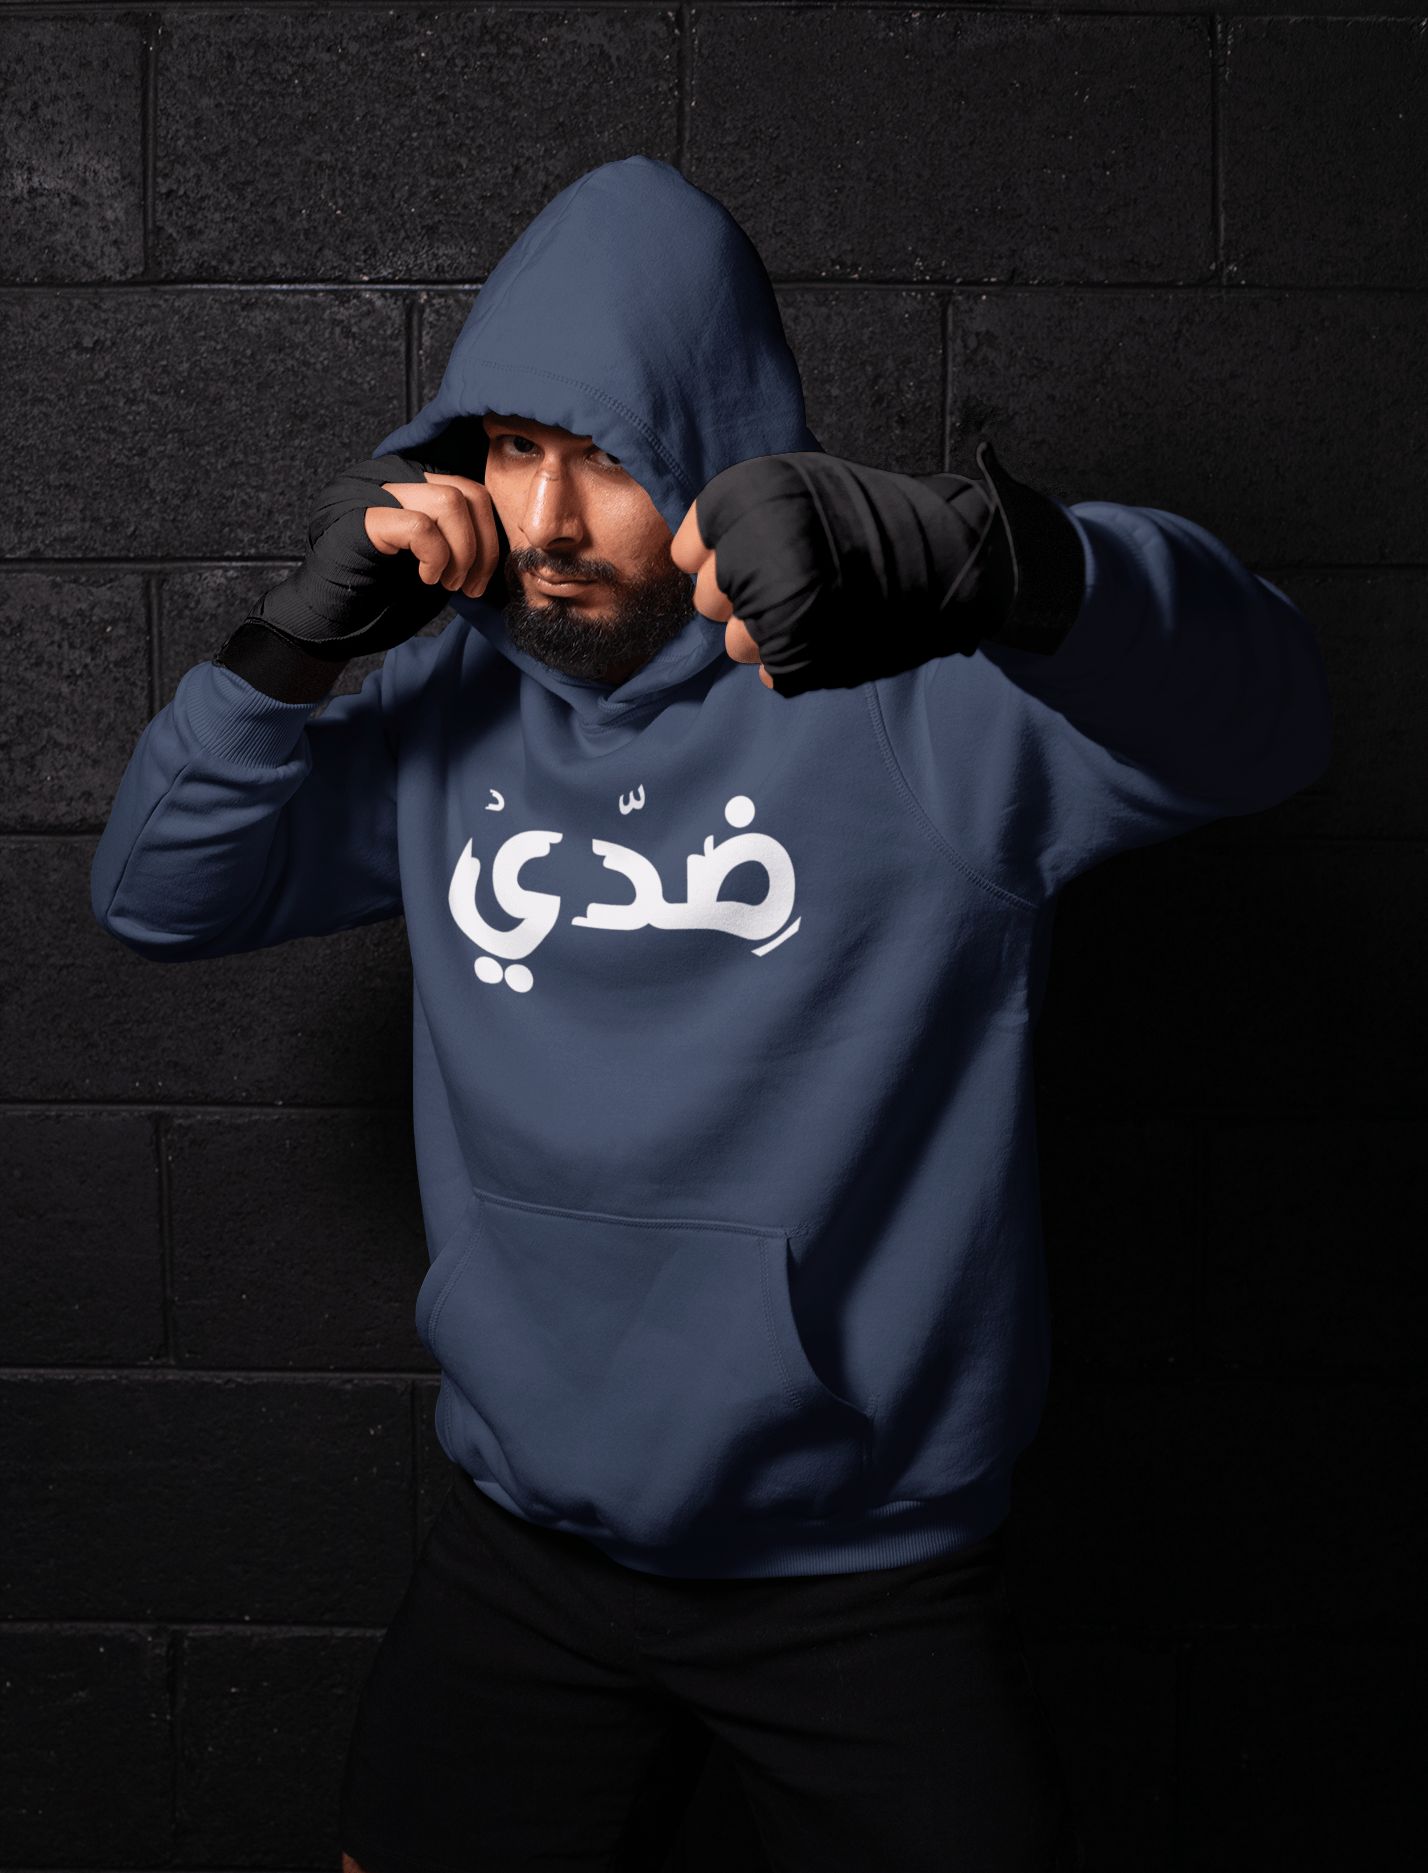 hoodie-mockup-of-a-man-shadowboxing-26249 (2)